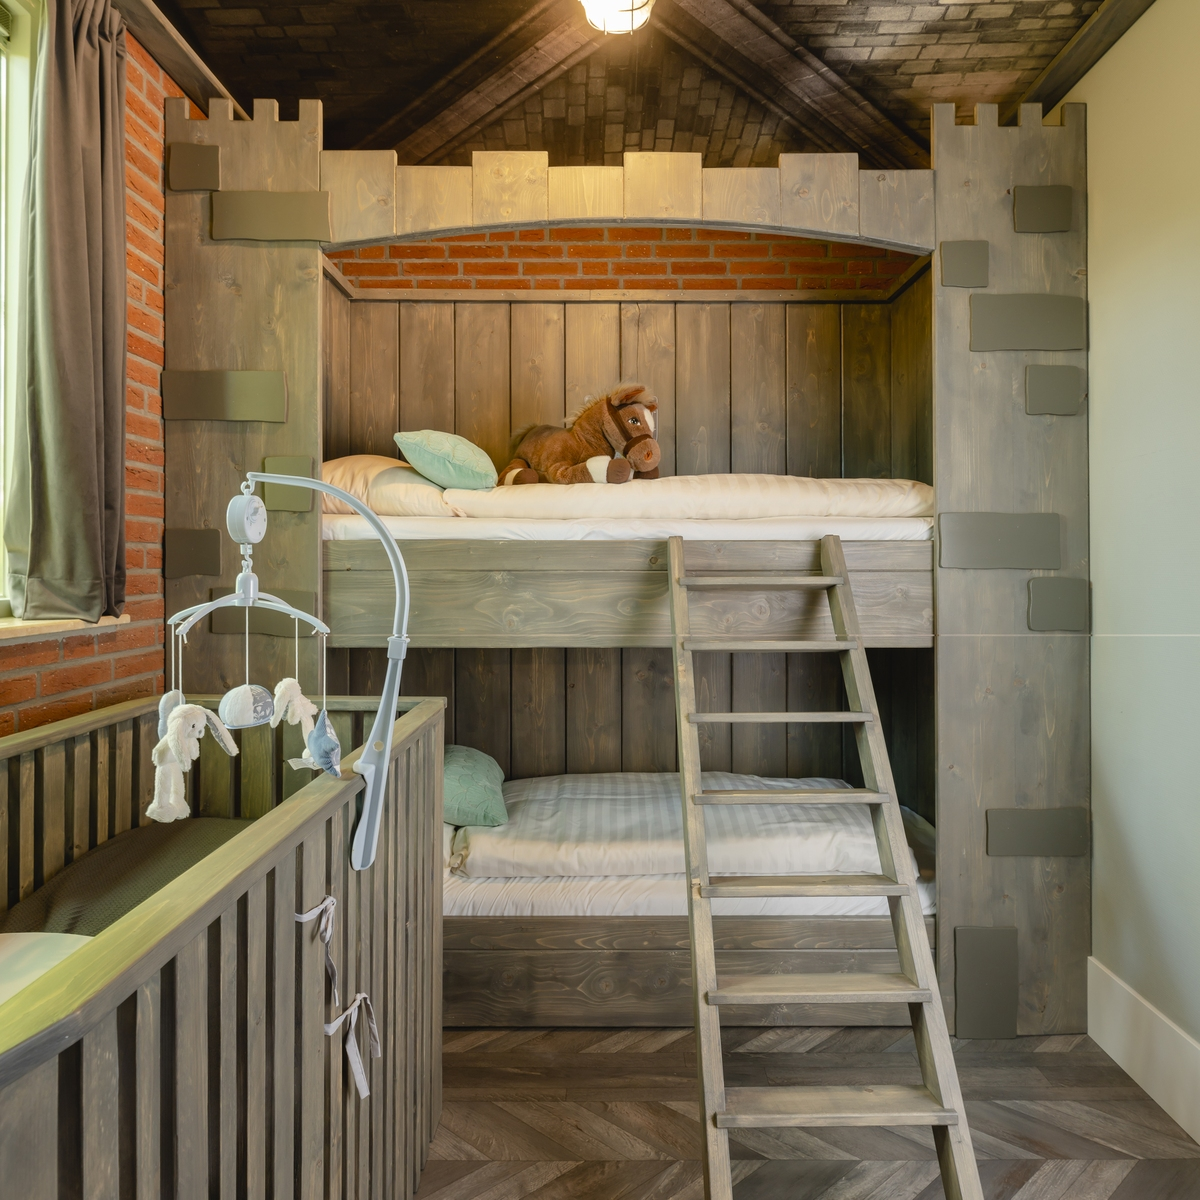 5-person baby & children's bungalow